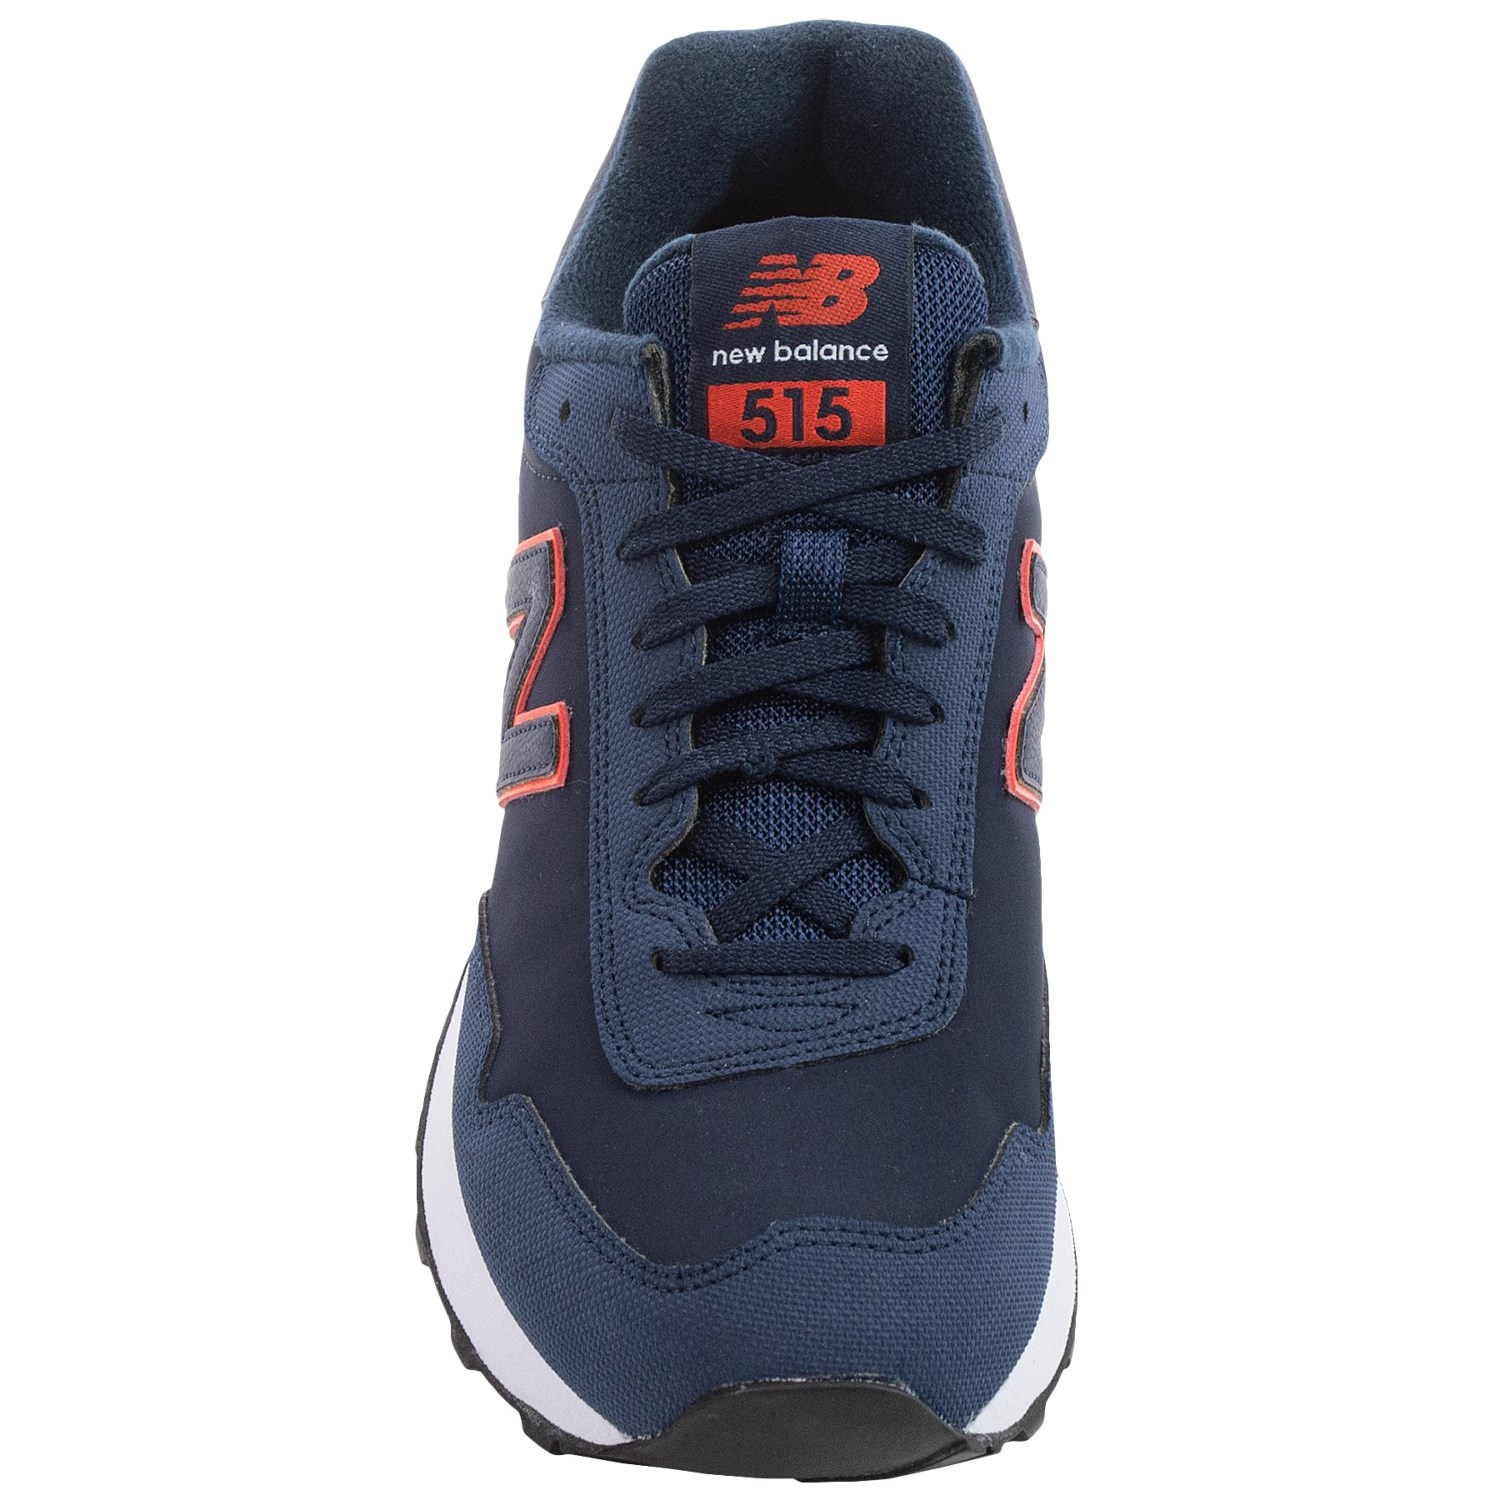 New Balance 515 new balance 515 sneakers (for men) EZVOOXP